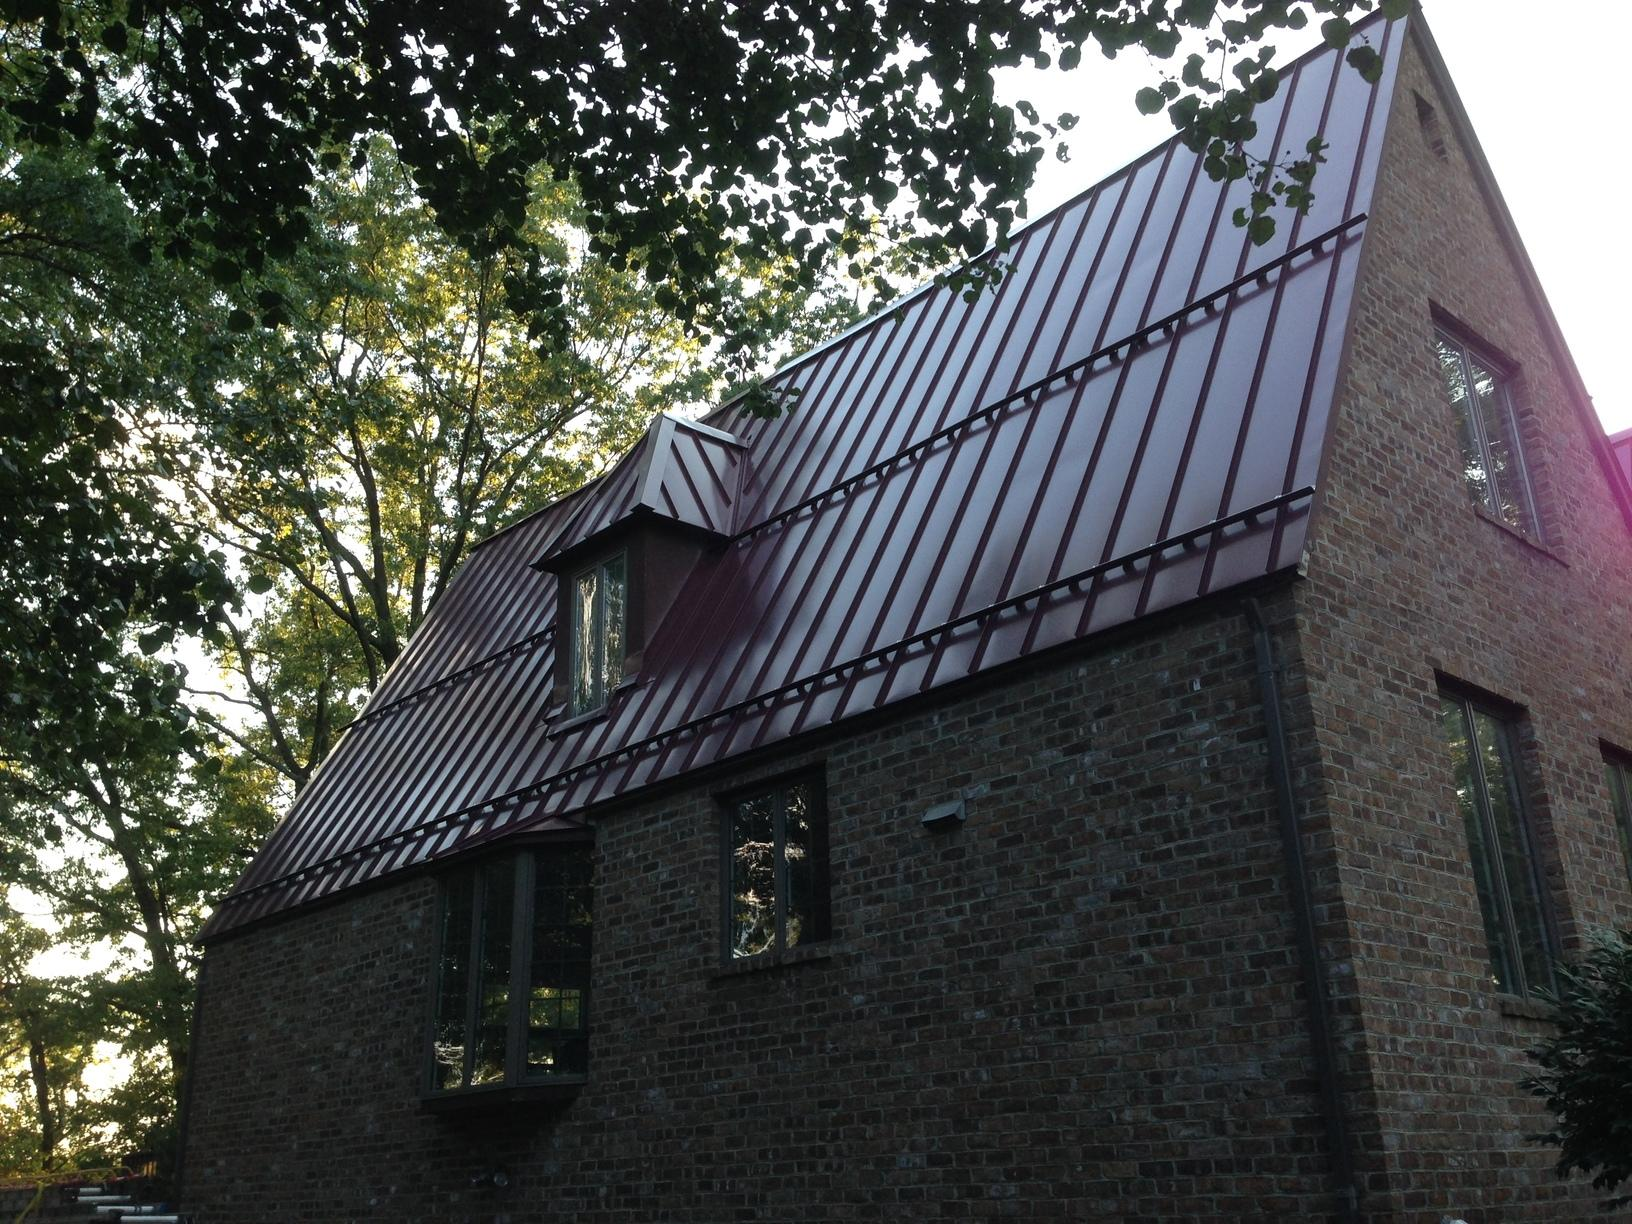 Standing Seam Metal Roof Over High Sloped Roof and Snow Guards